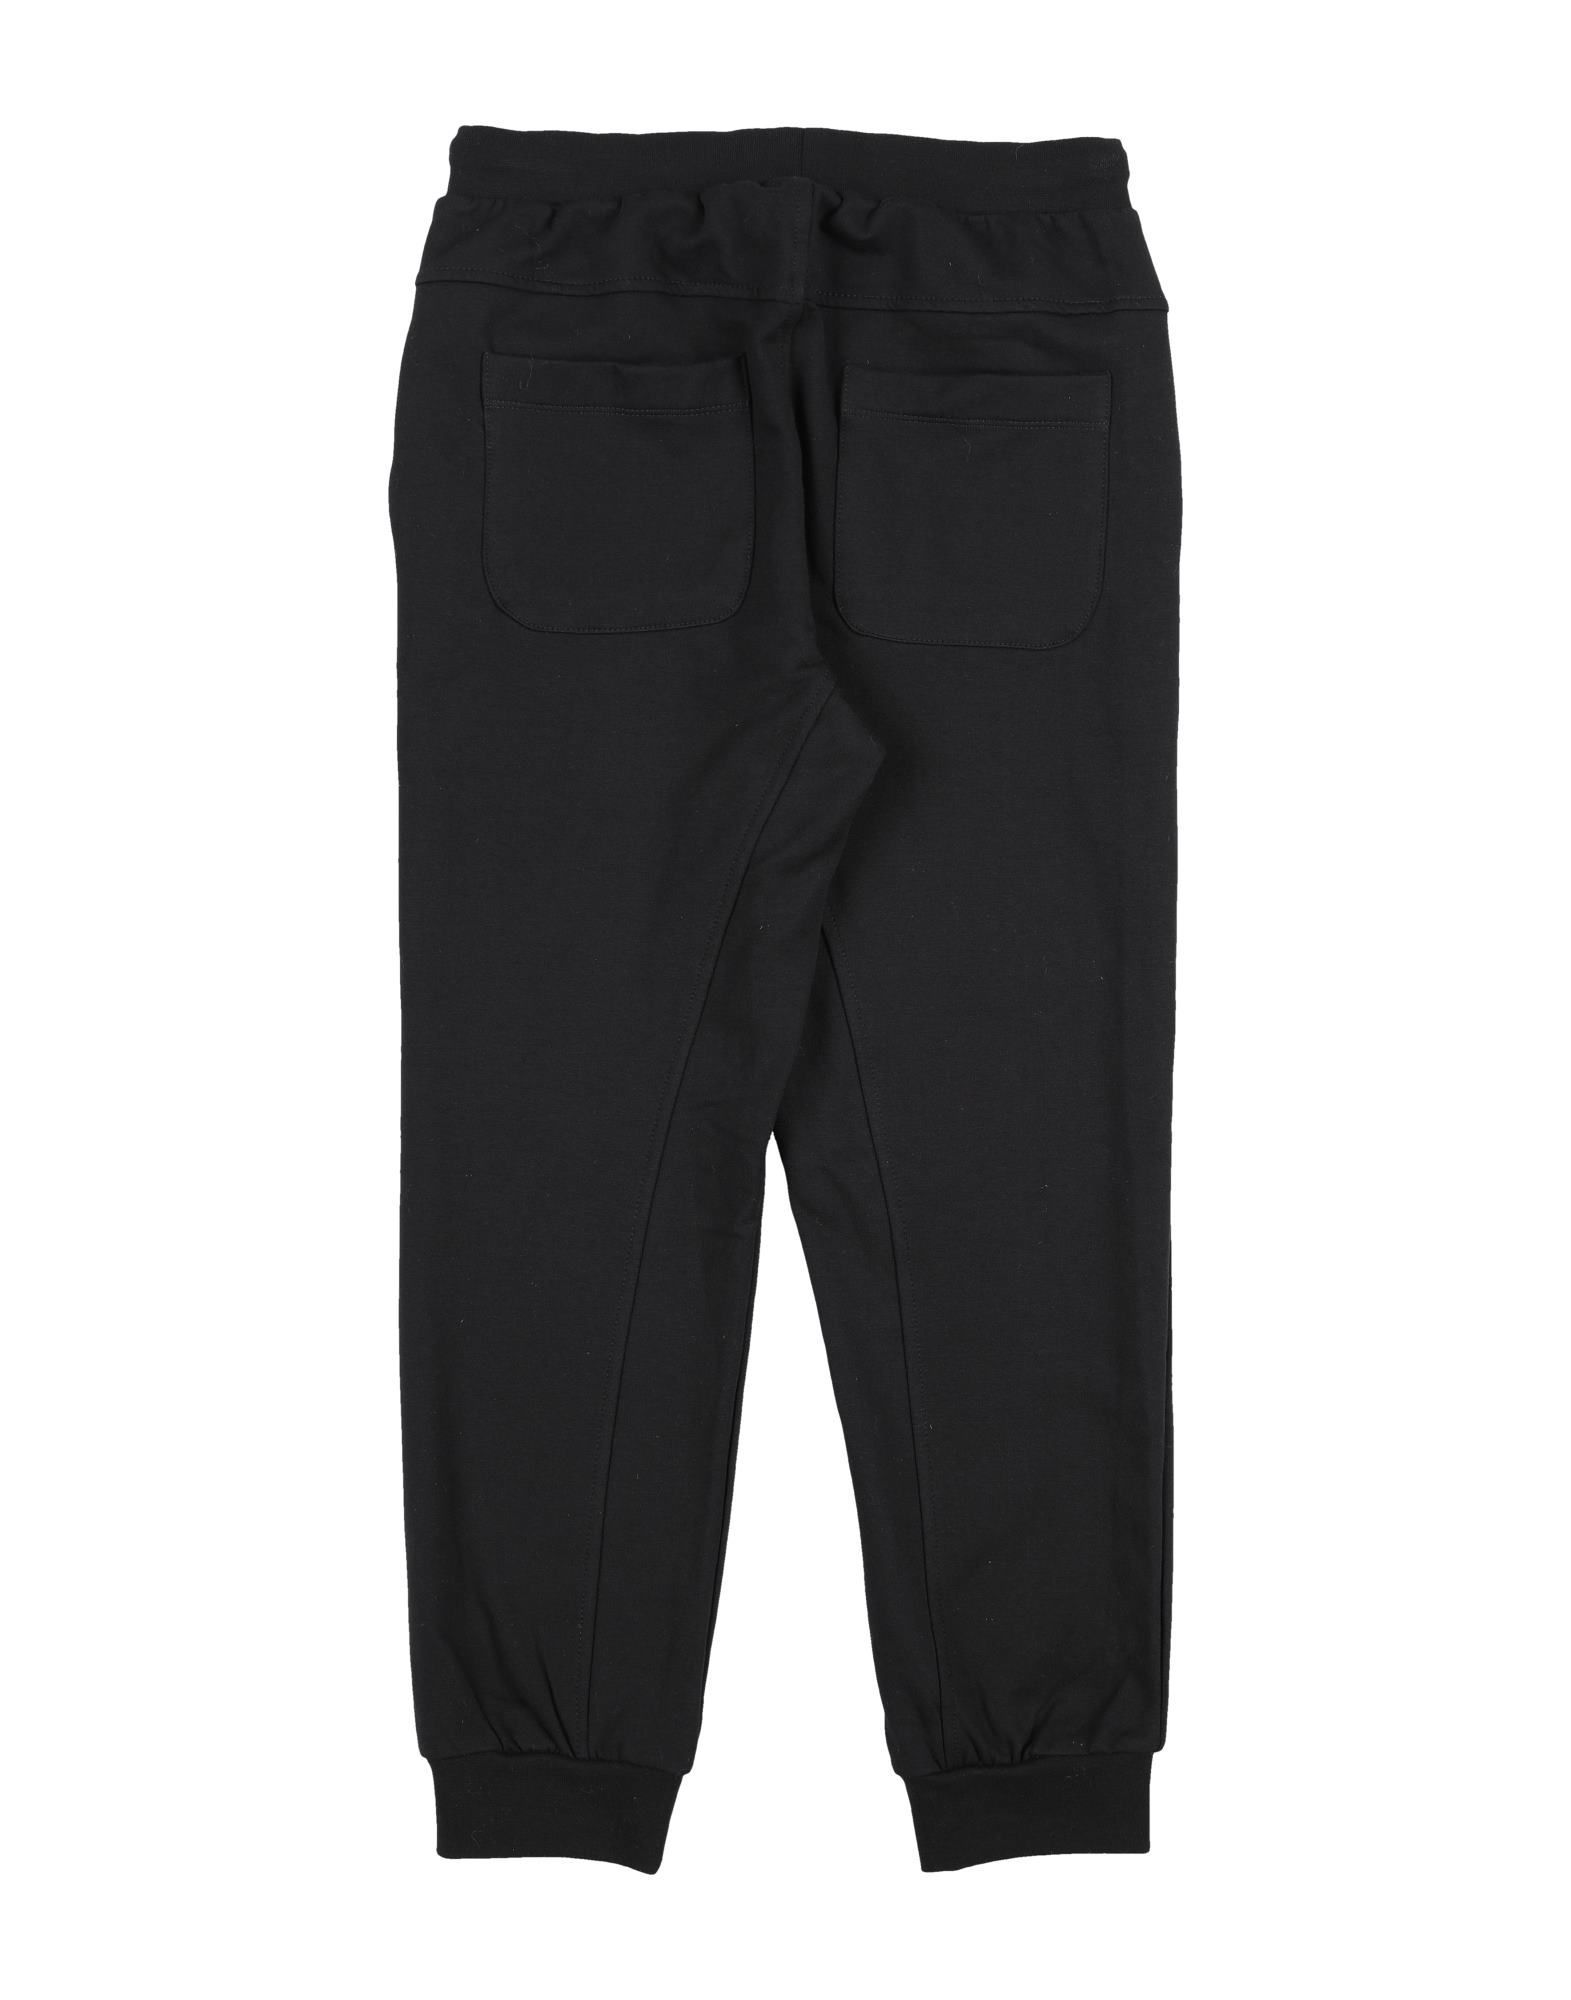 Miss Grant Girl Casual trousers Black Cotton